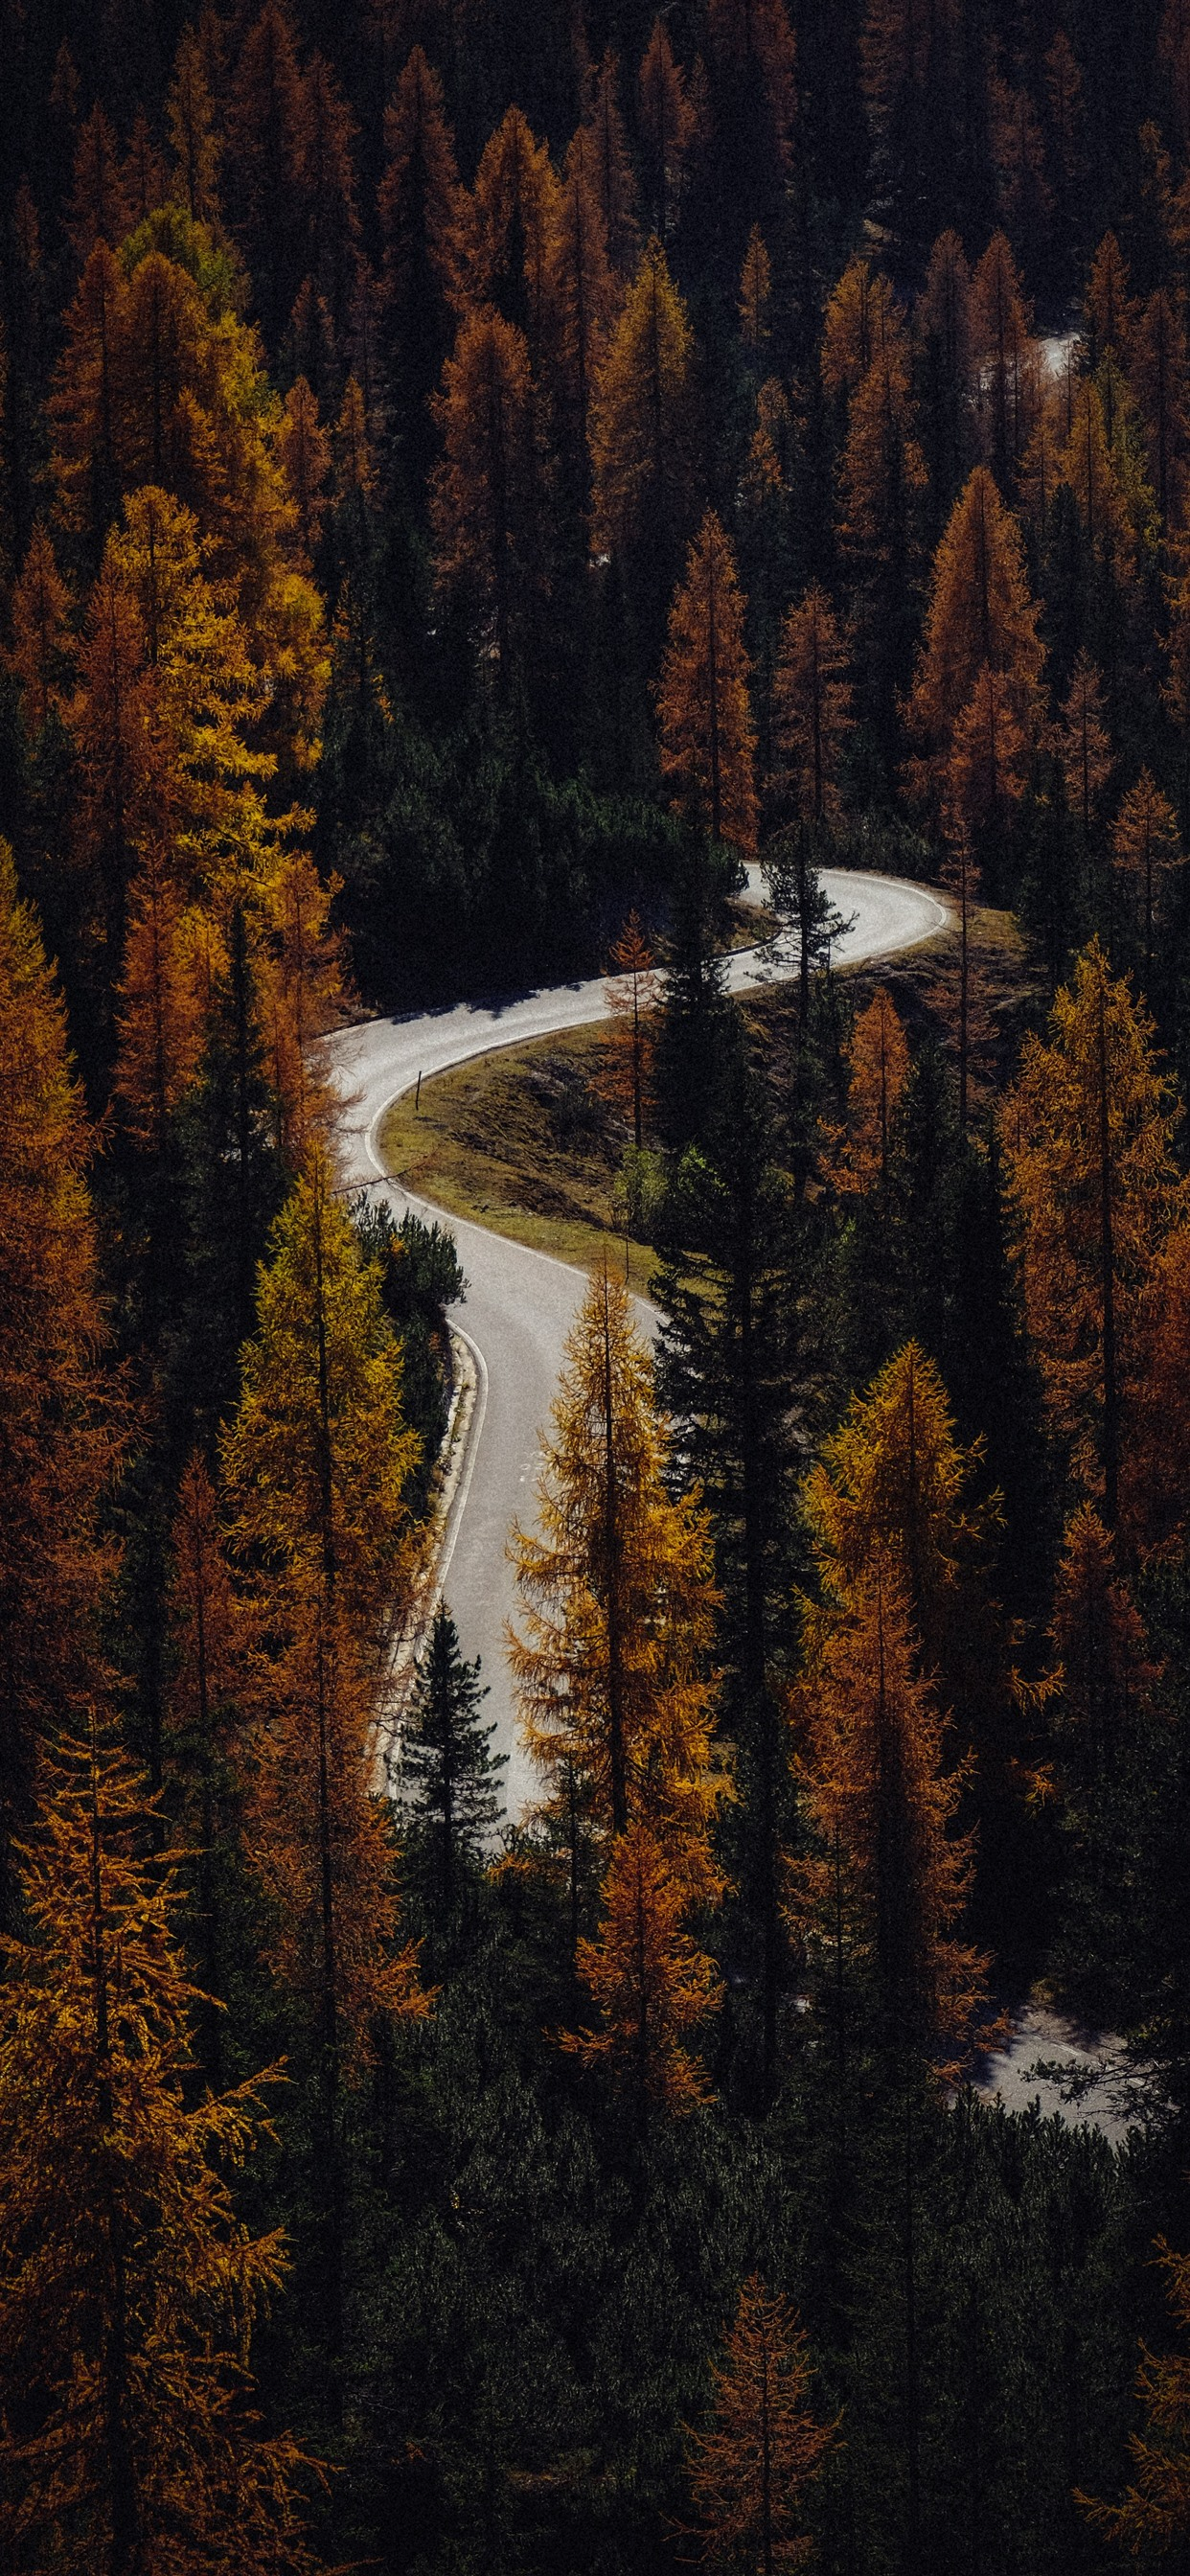 Bend Road Conifers Autumn 1242x2688 Iphone 11 Pro Xs Max Wallpaper Background Picture Image